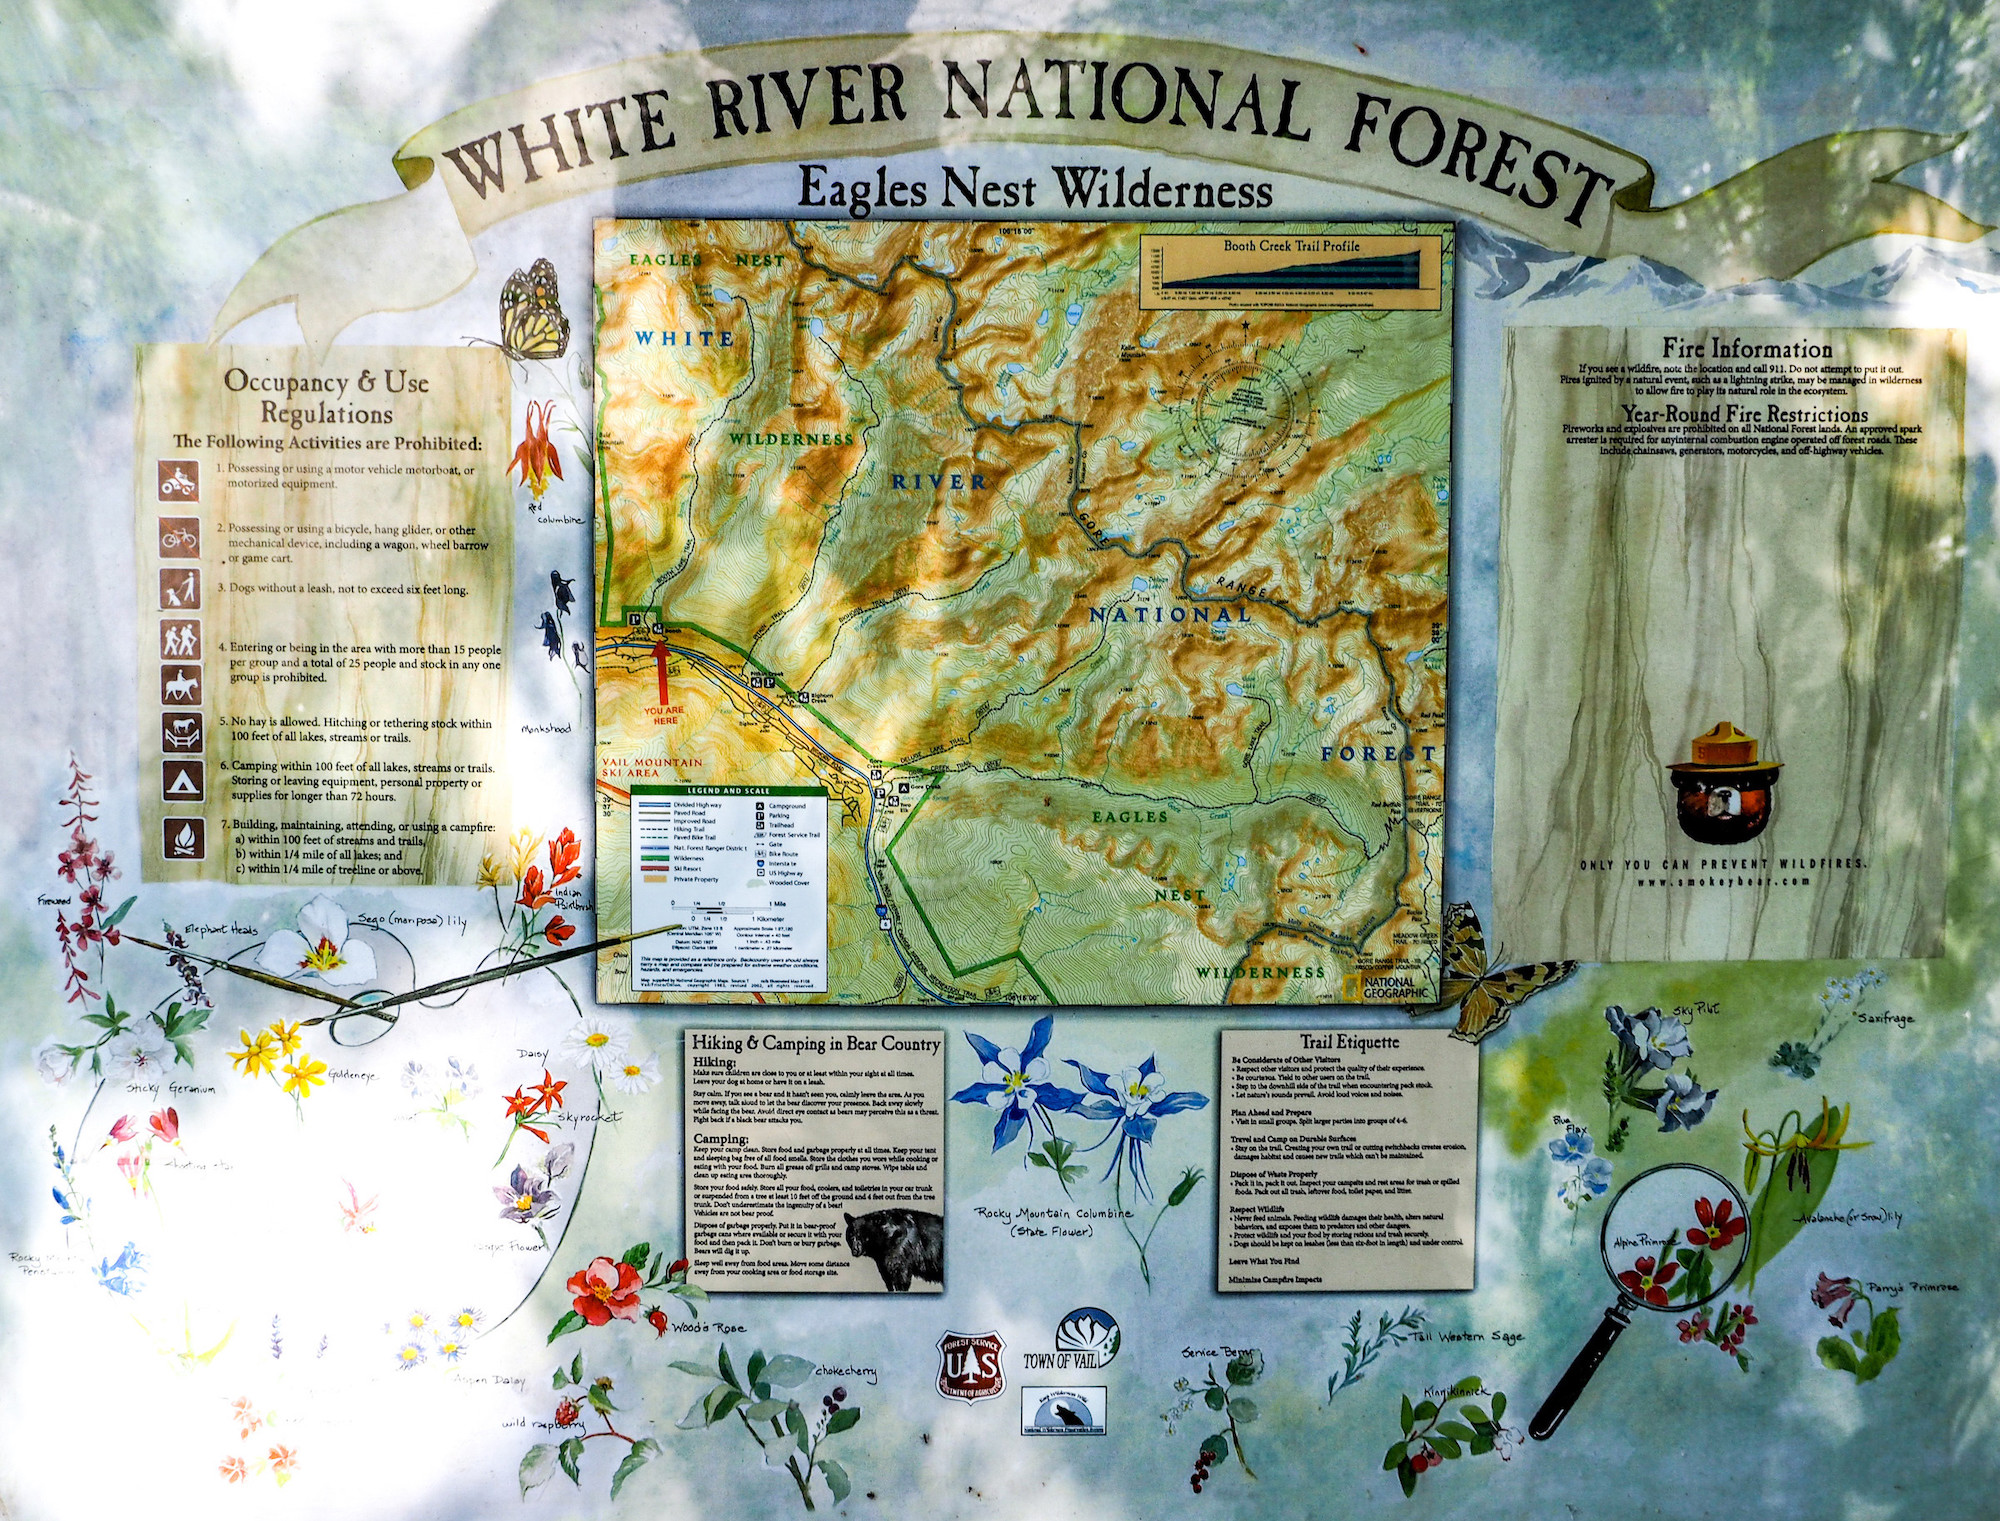 """A trailhead sign reading """"WHITE RIVER NATIONAL FOREST"""""""